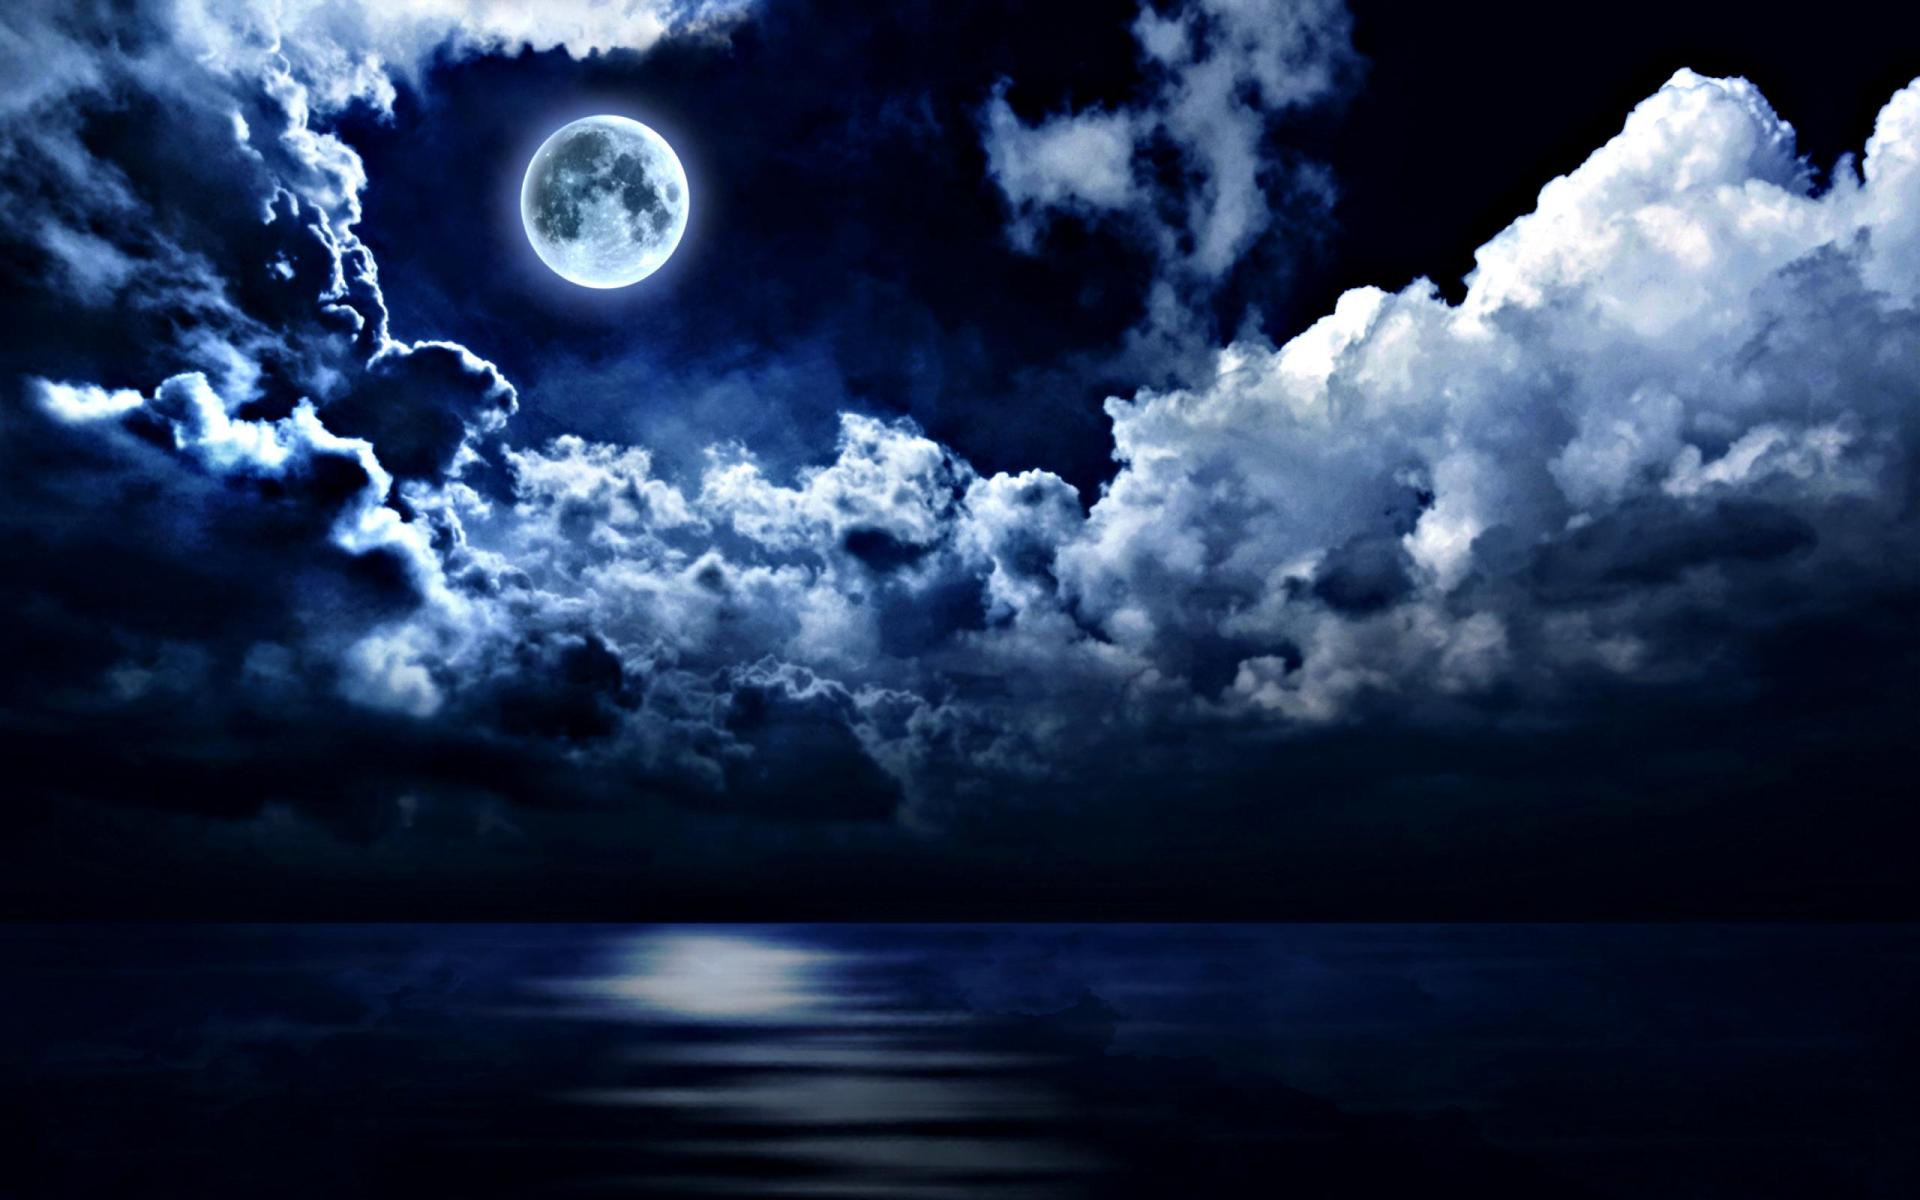 Votre fond d'écran. - Page 2 1454547909-full-moon-and-sea-desktop-new-wallpapers-free-download-nature-widescreen-images